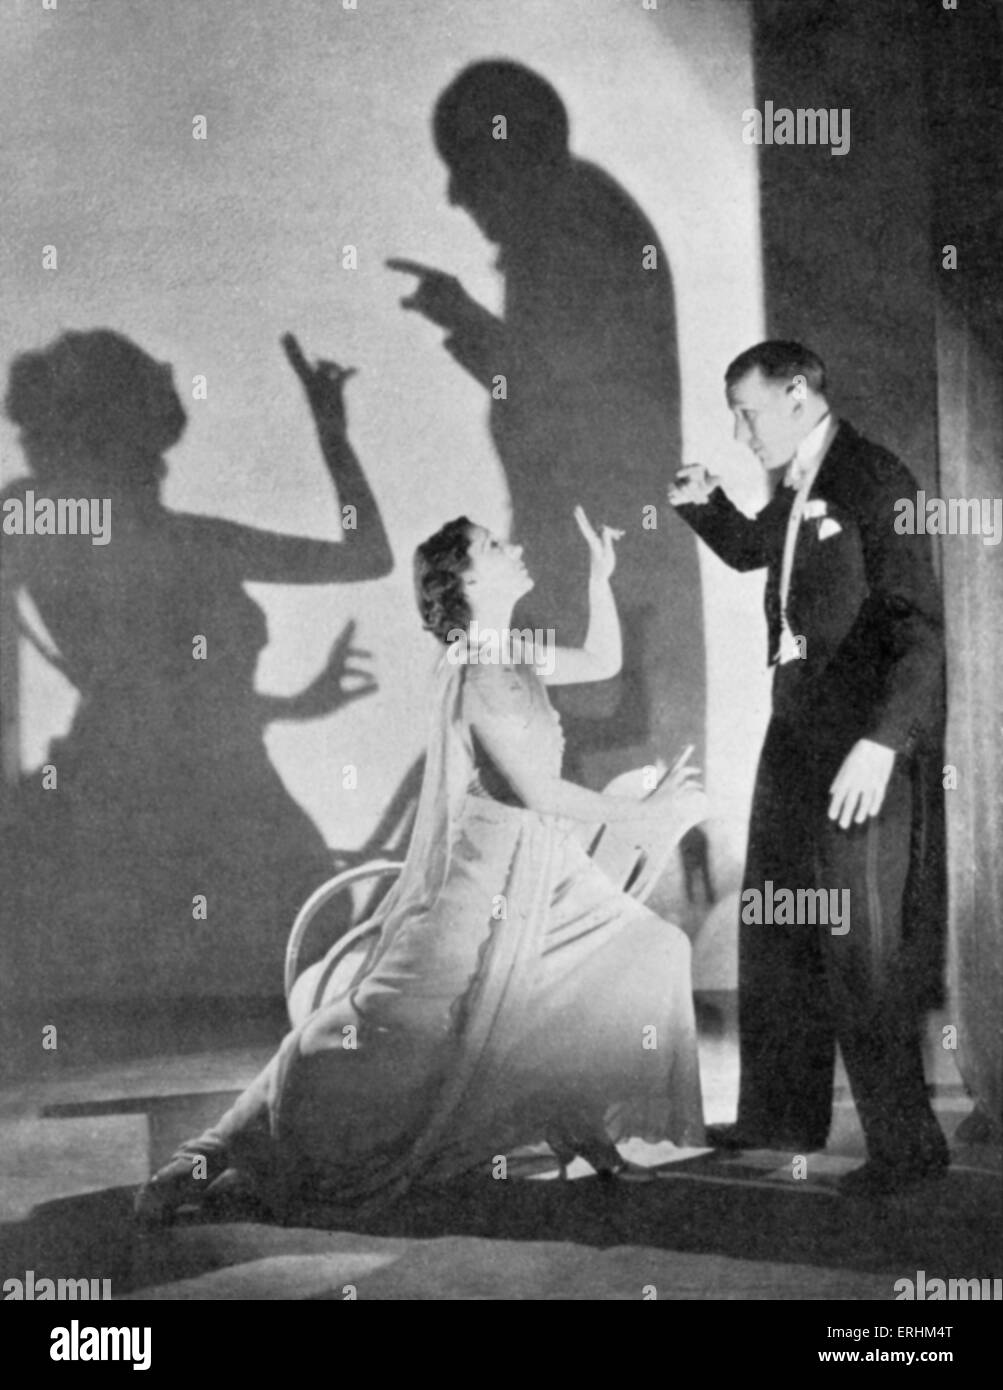 Noel Coward y Gertrude Lawrence en 'shadow Play', de 1936. NC, el actor inglés, dramaturgo y compositor: Imagen De Stock